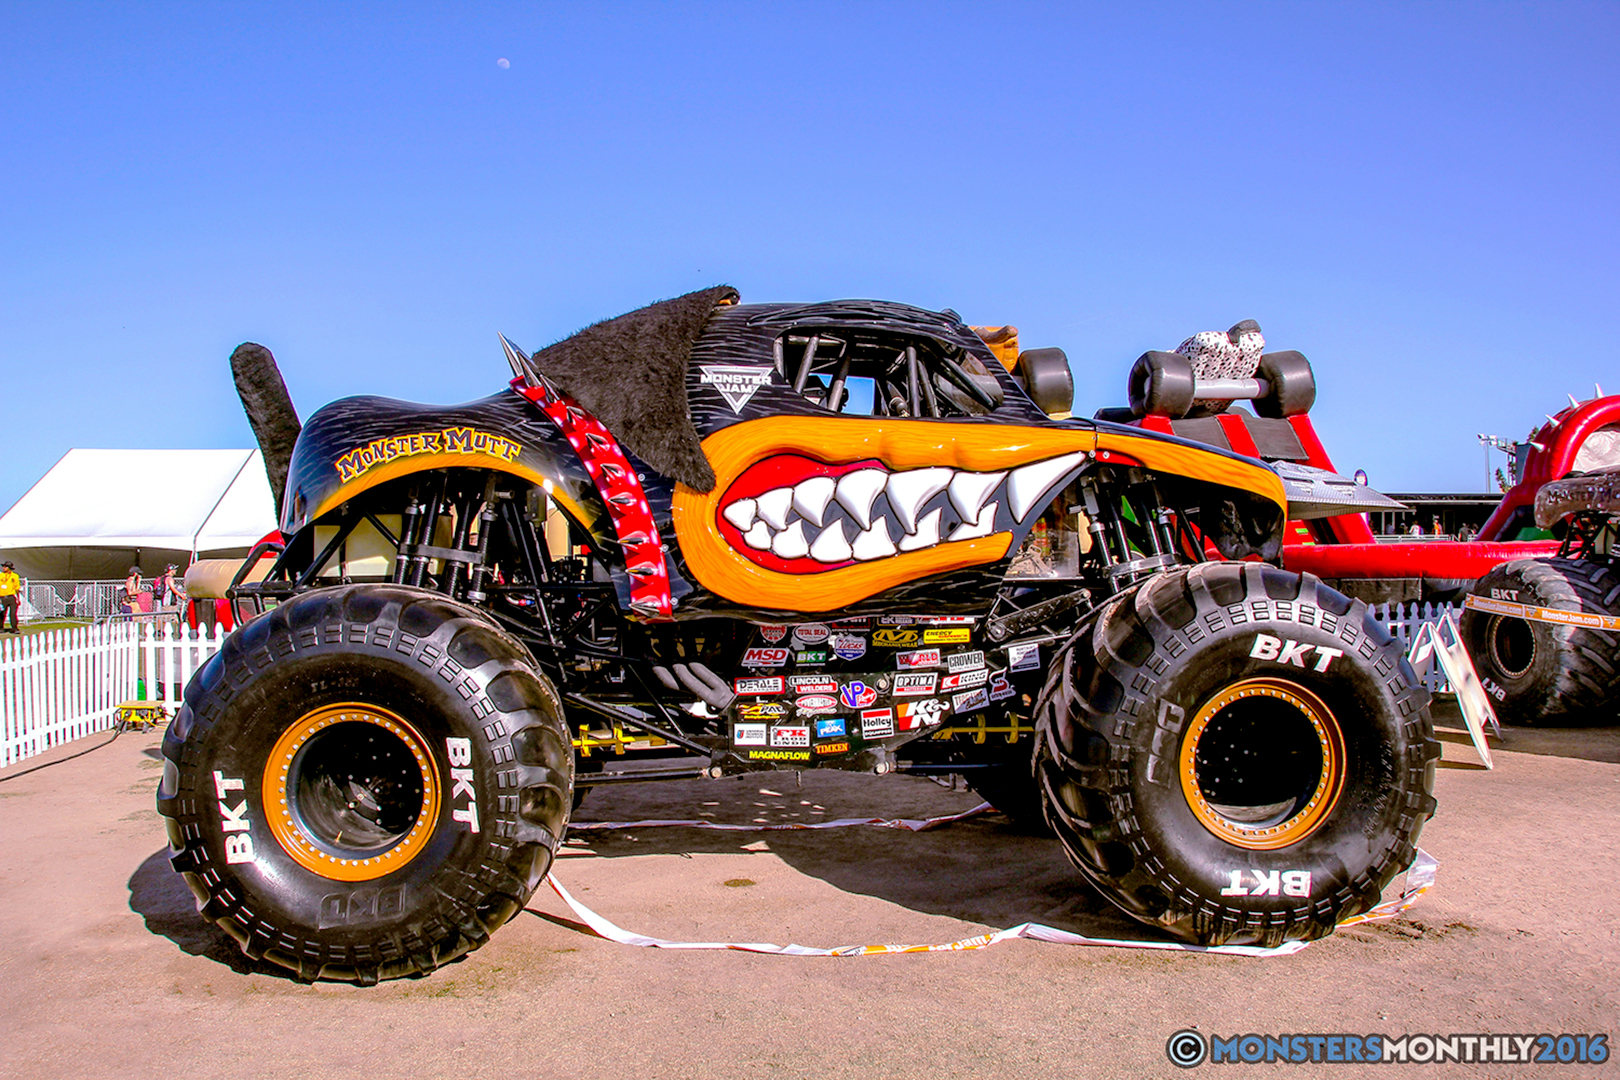 monster mutt rottweiler monster trucks wiki fandom powered by wikia. Black Bedroom Furniture Sets. Home Design Ideas